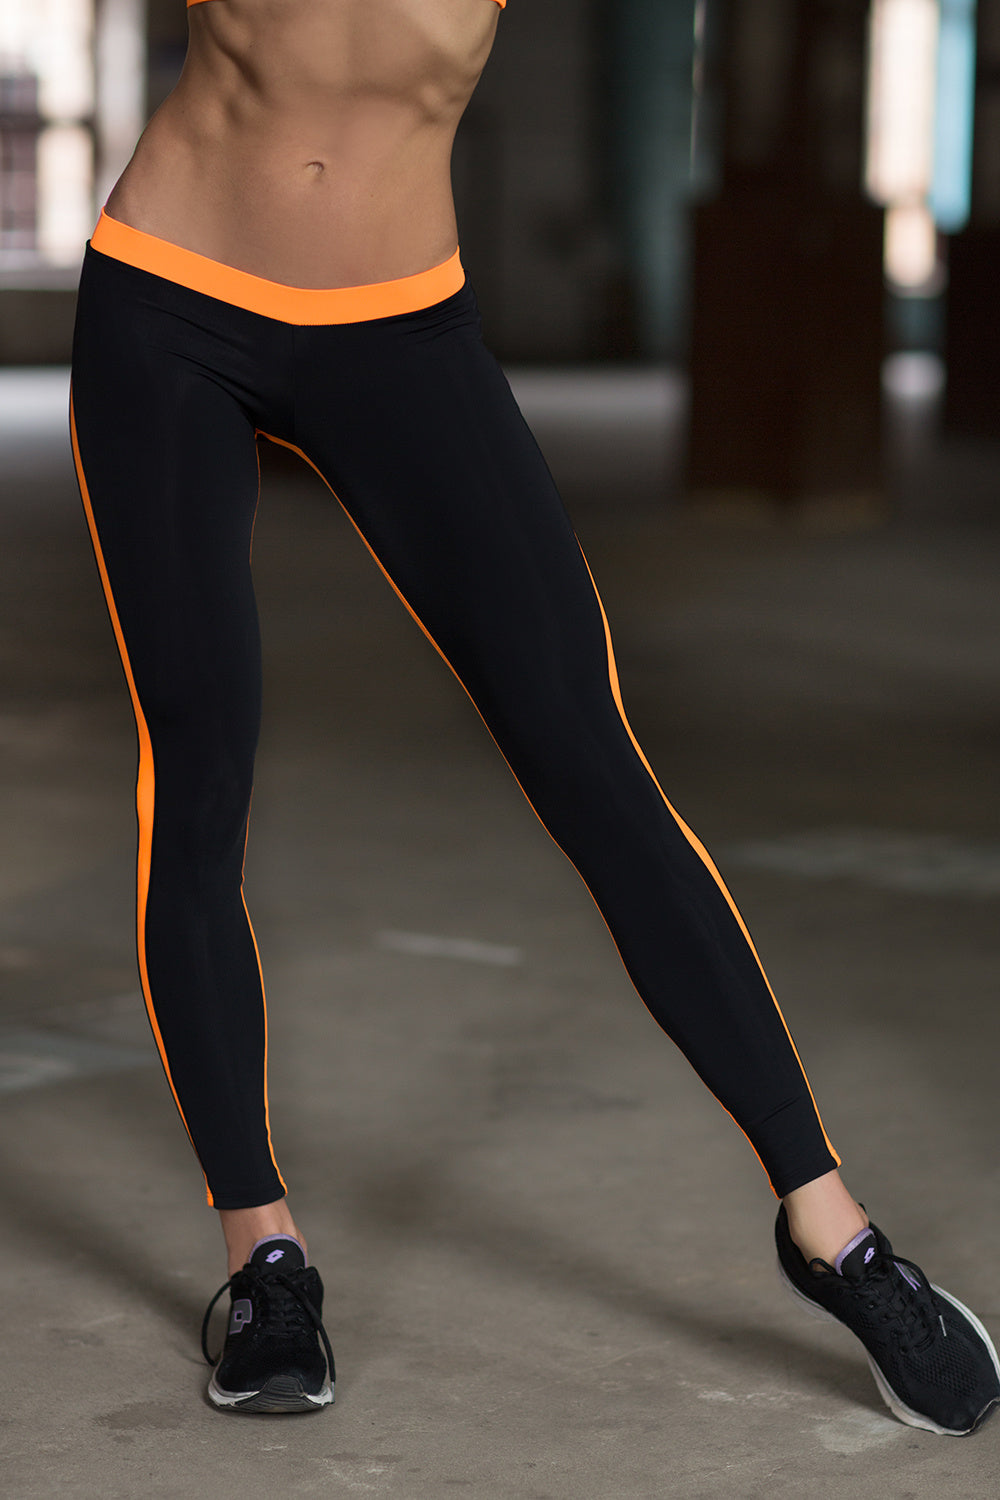 Low Rise Orange - Designed for Fitness